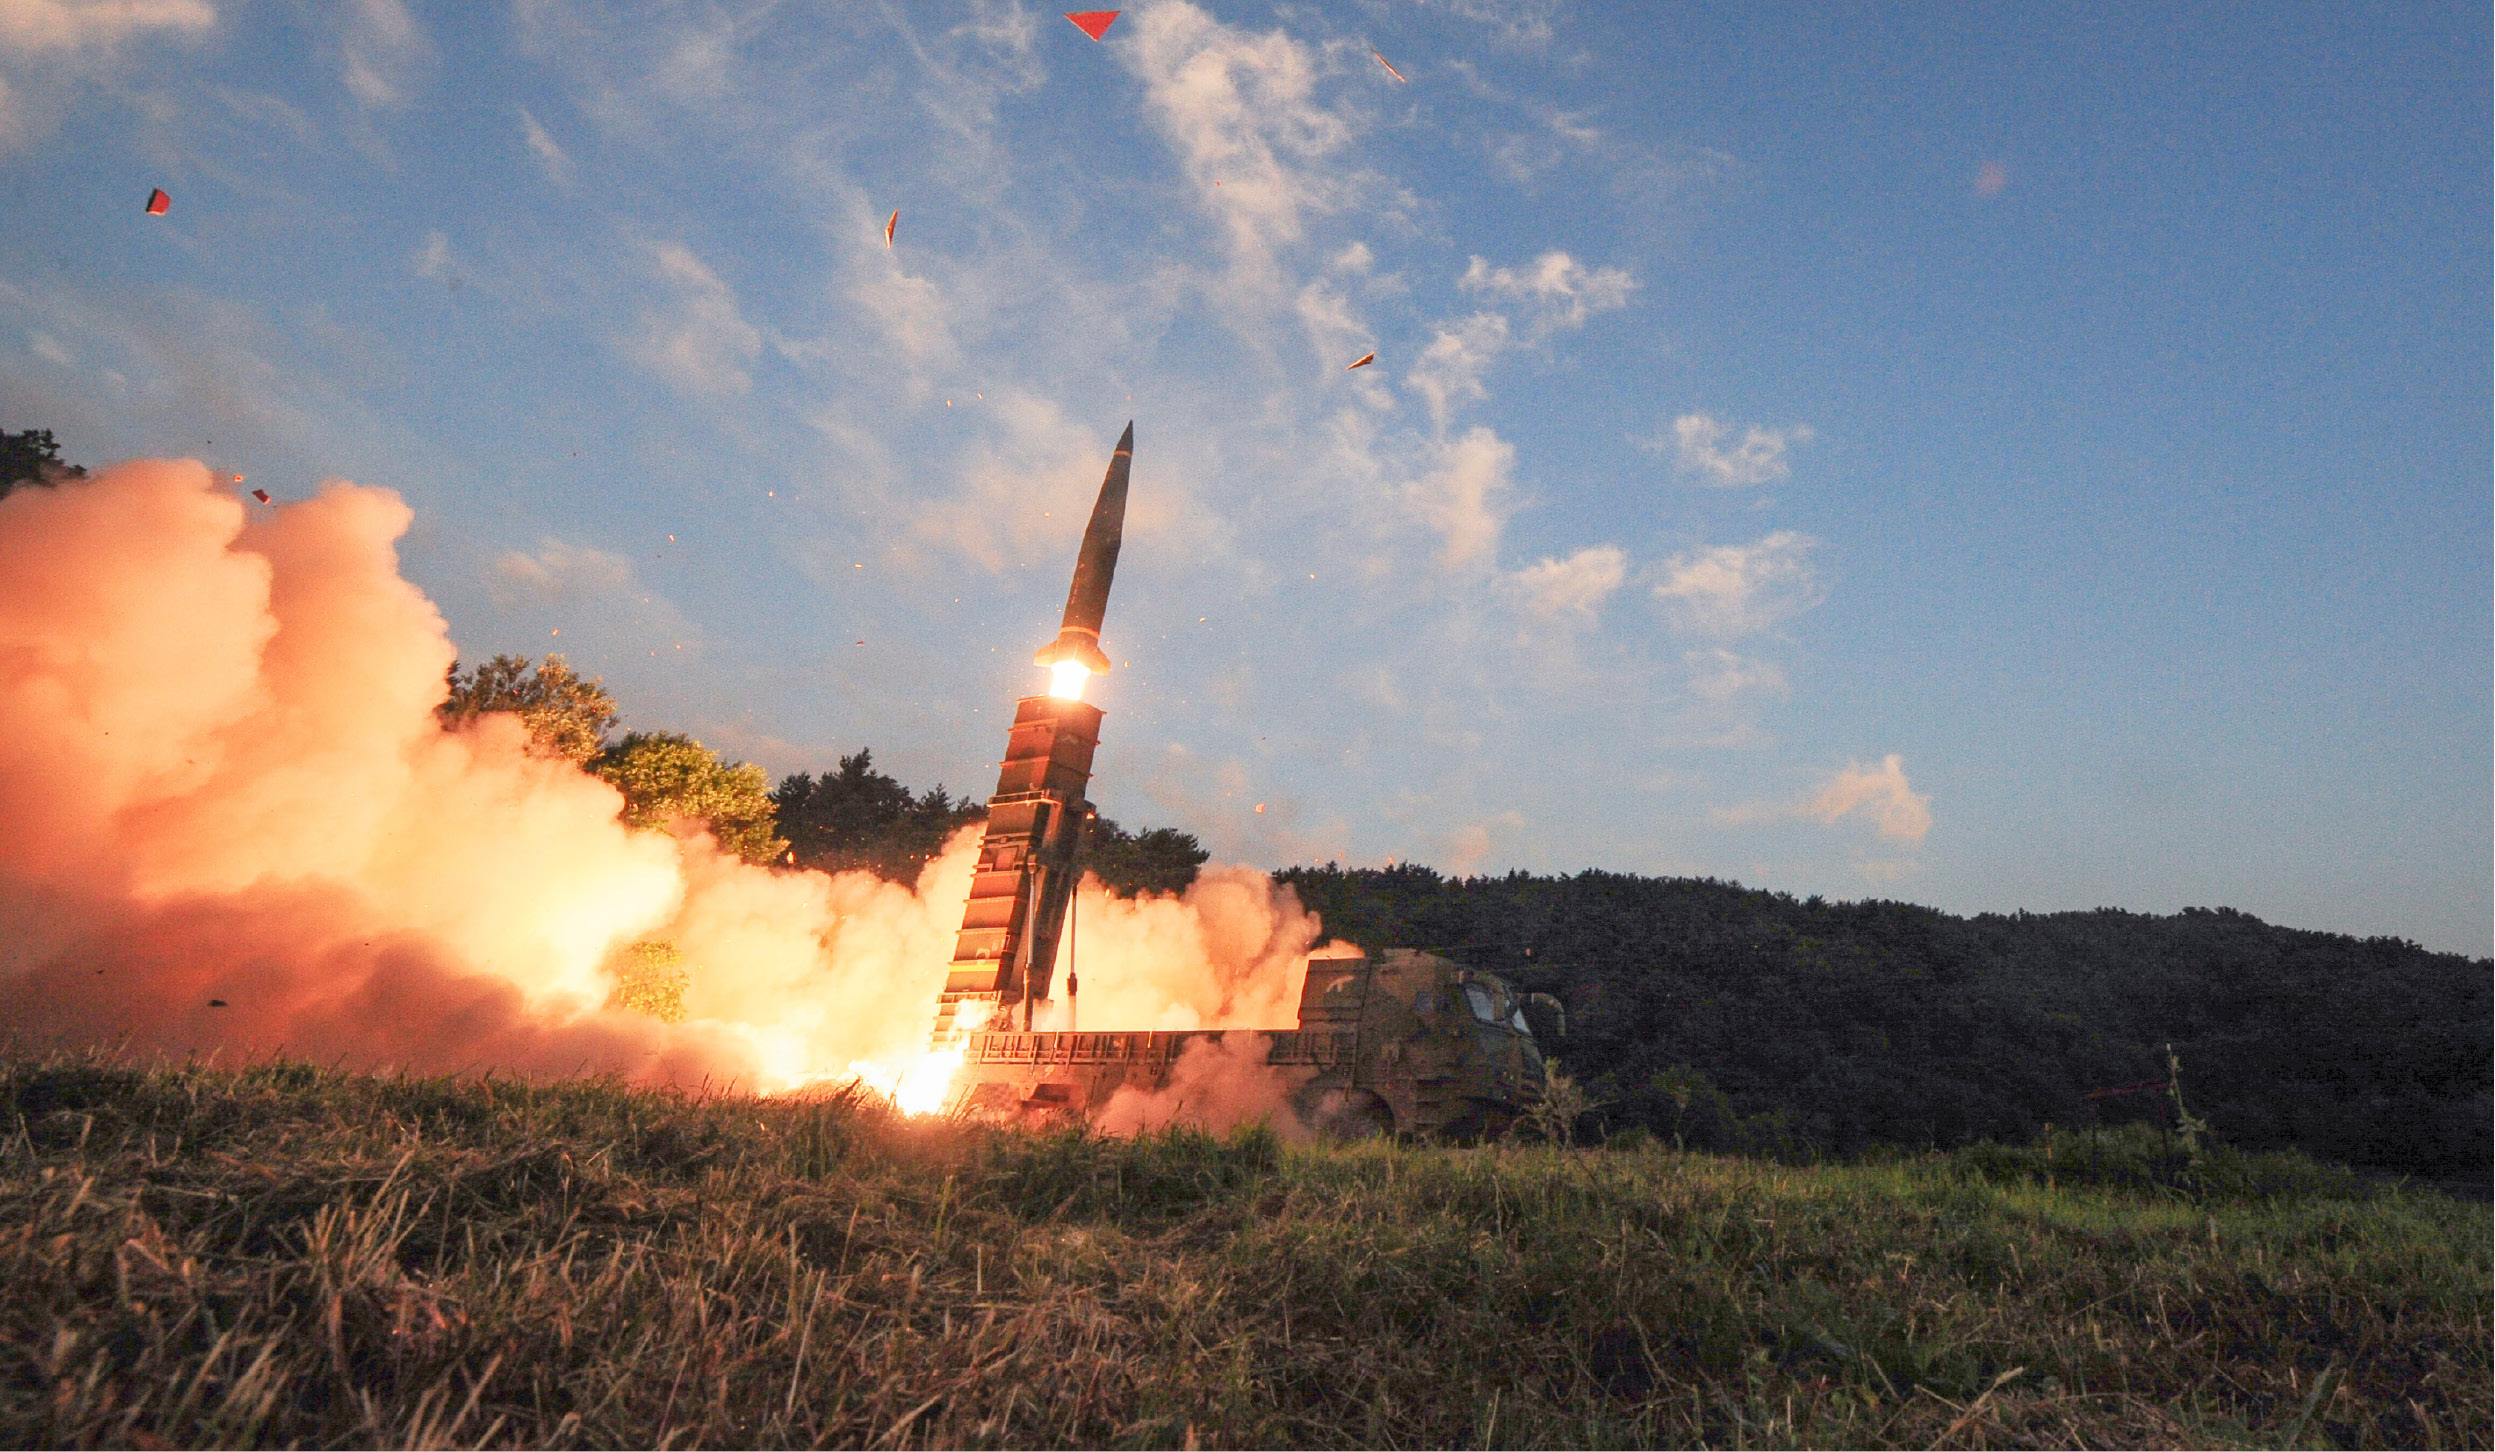 South Korea's Hyunmoo II ballistic missile is fired during an exercise at an undisclosed location in South Korea on Monday. | South Korea Defense Ministry via Associated Press